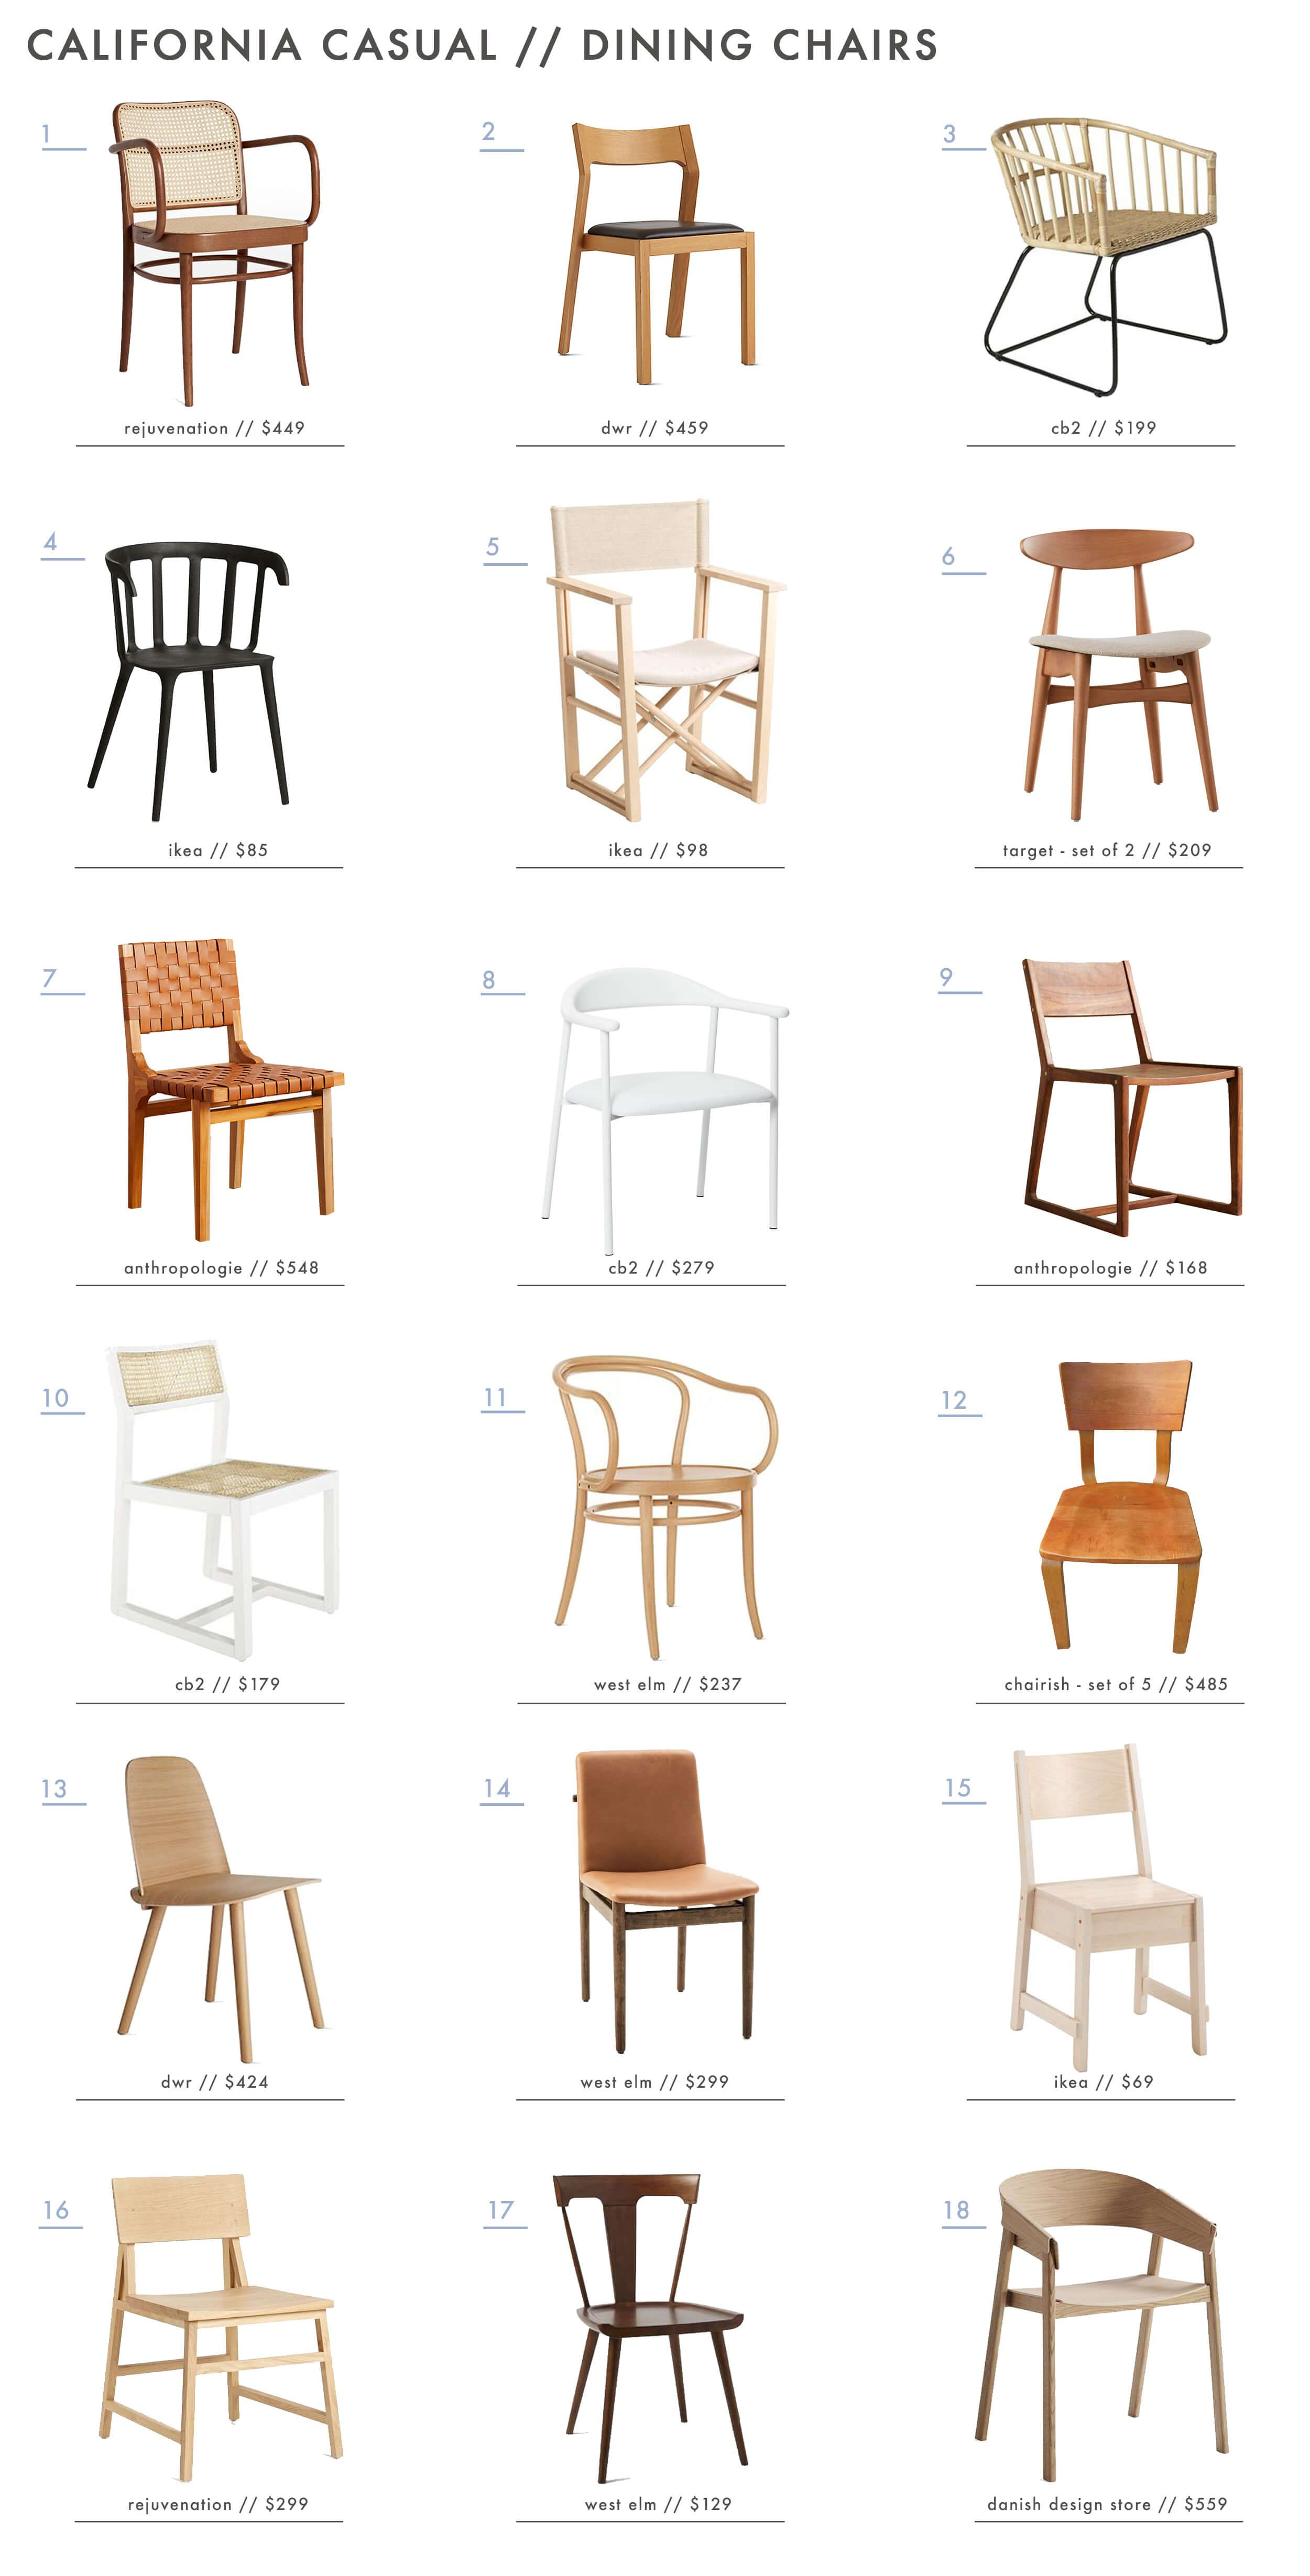 U0027Effortless Expensiveu0027 Style Roundup: Dining Chairs